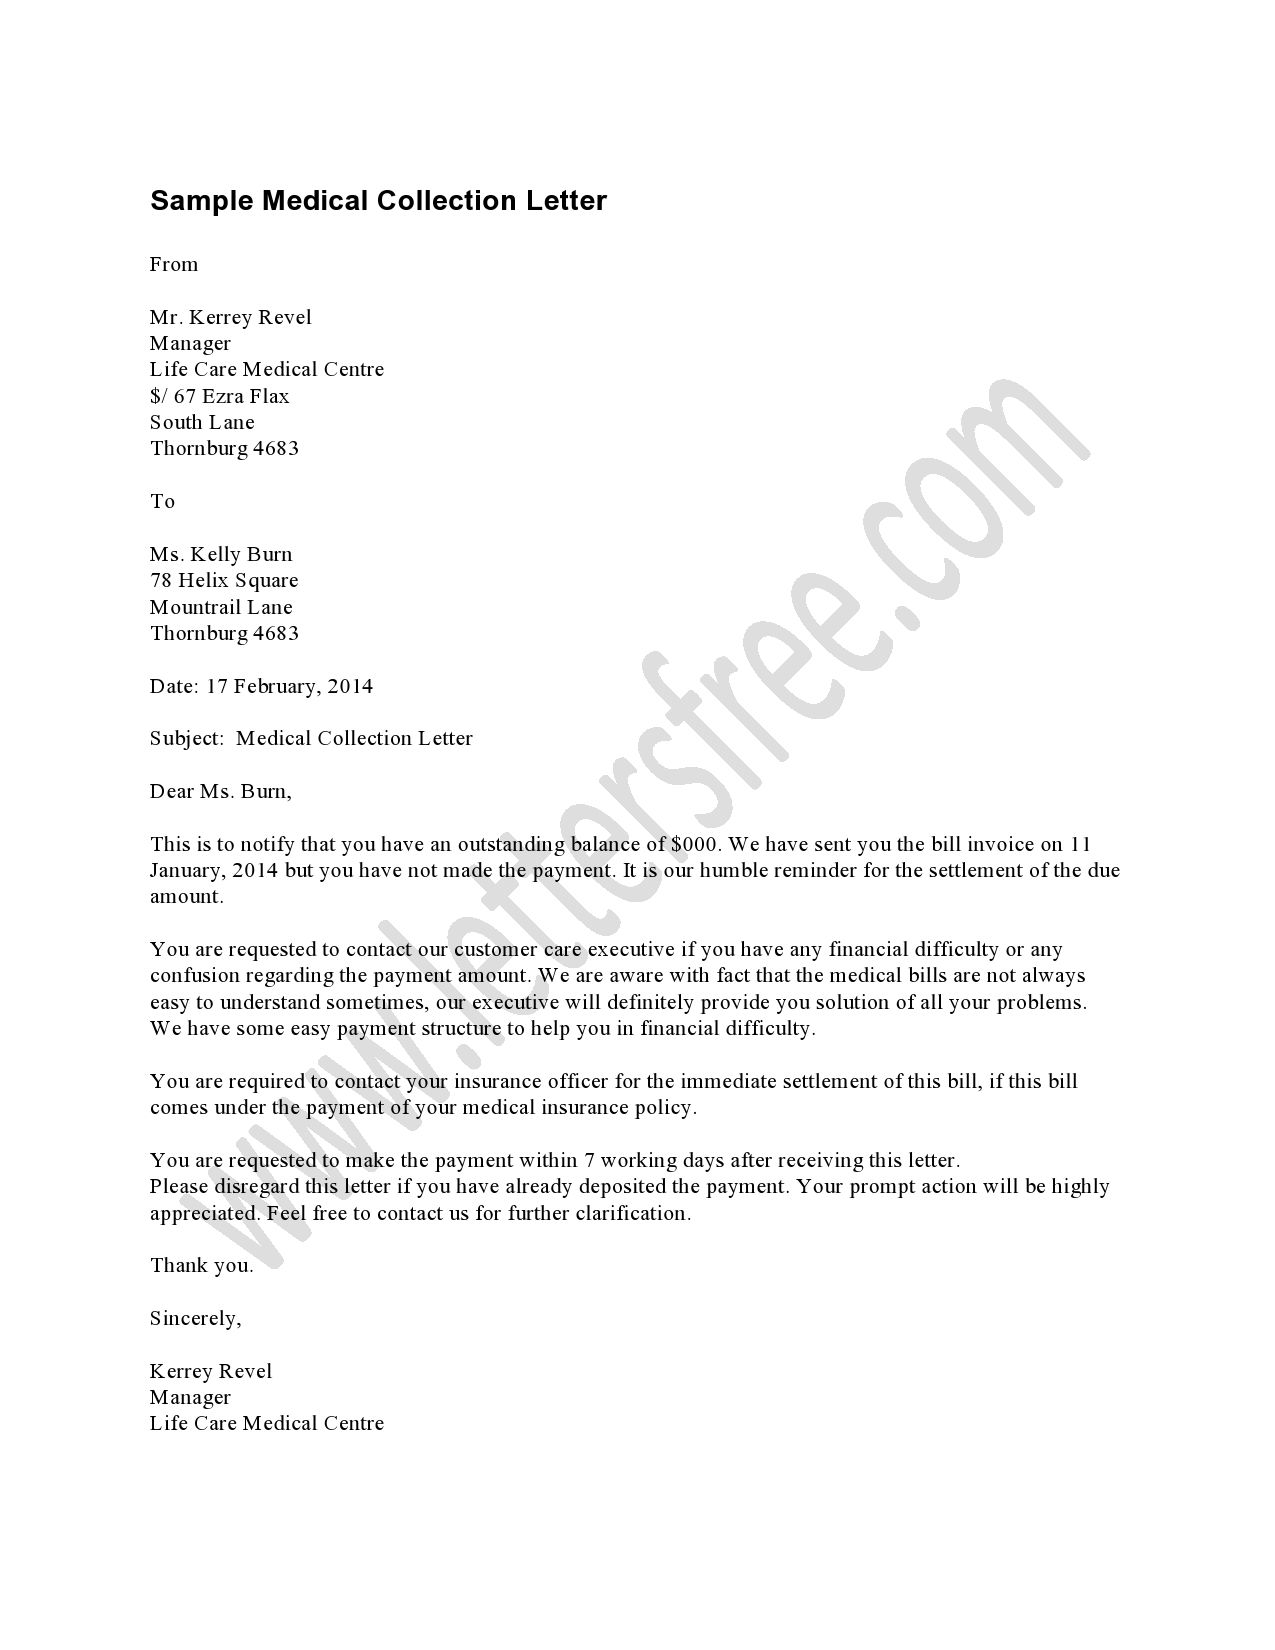 Medical collection letter example should be used as a first reminder medical collection letter example should be used as a first reminder notice to gently remind your patients to pay or get in touch with your office to work spiritdancerdesigns